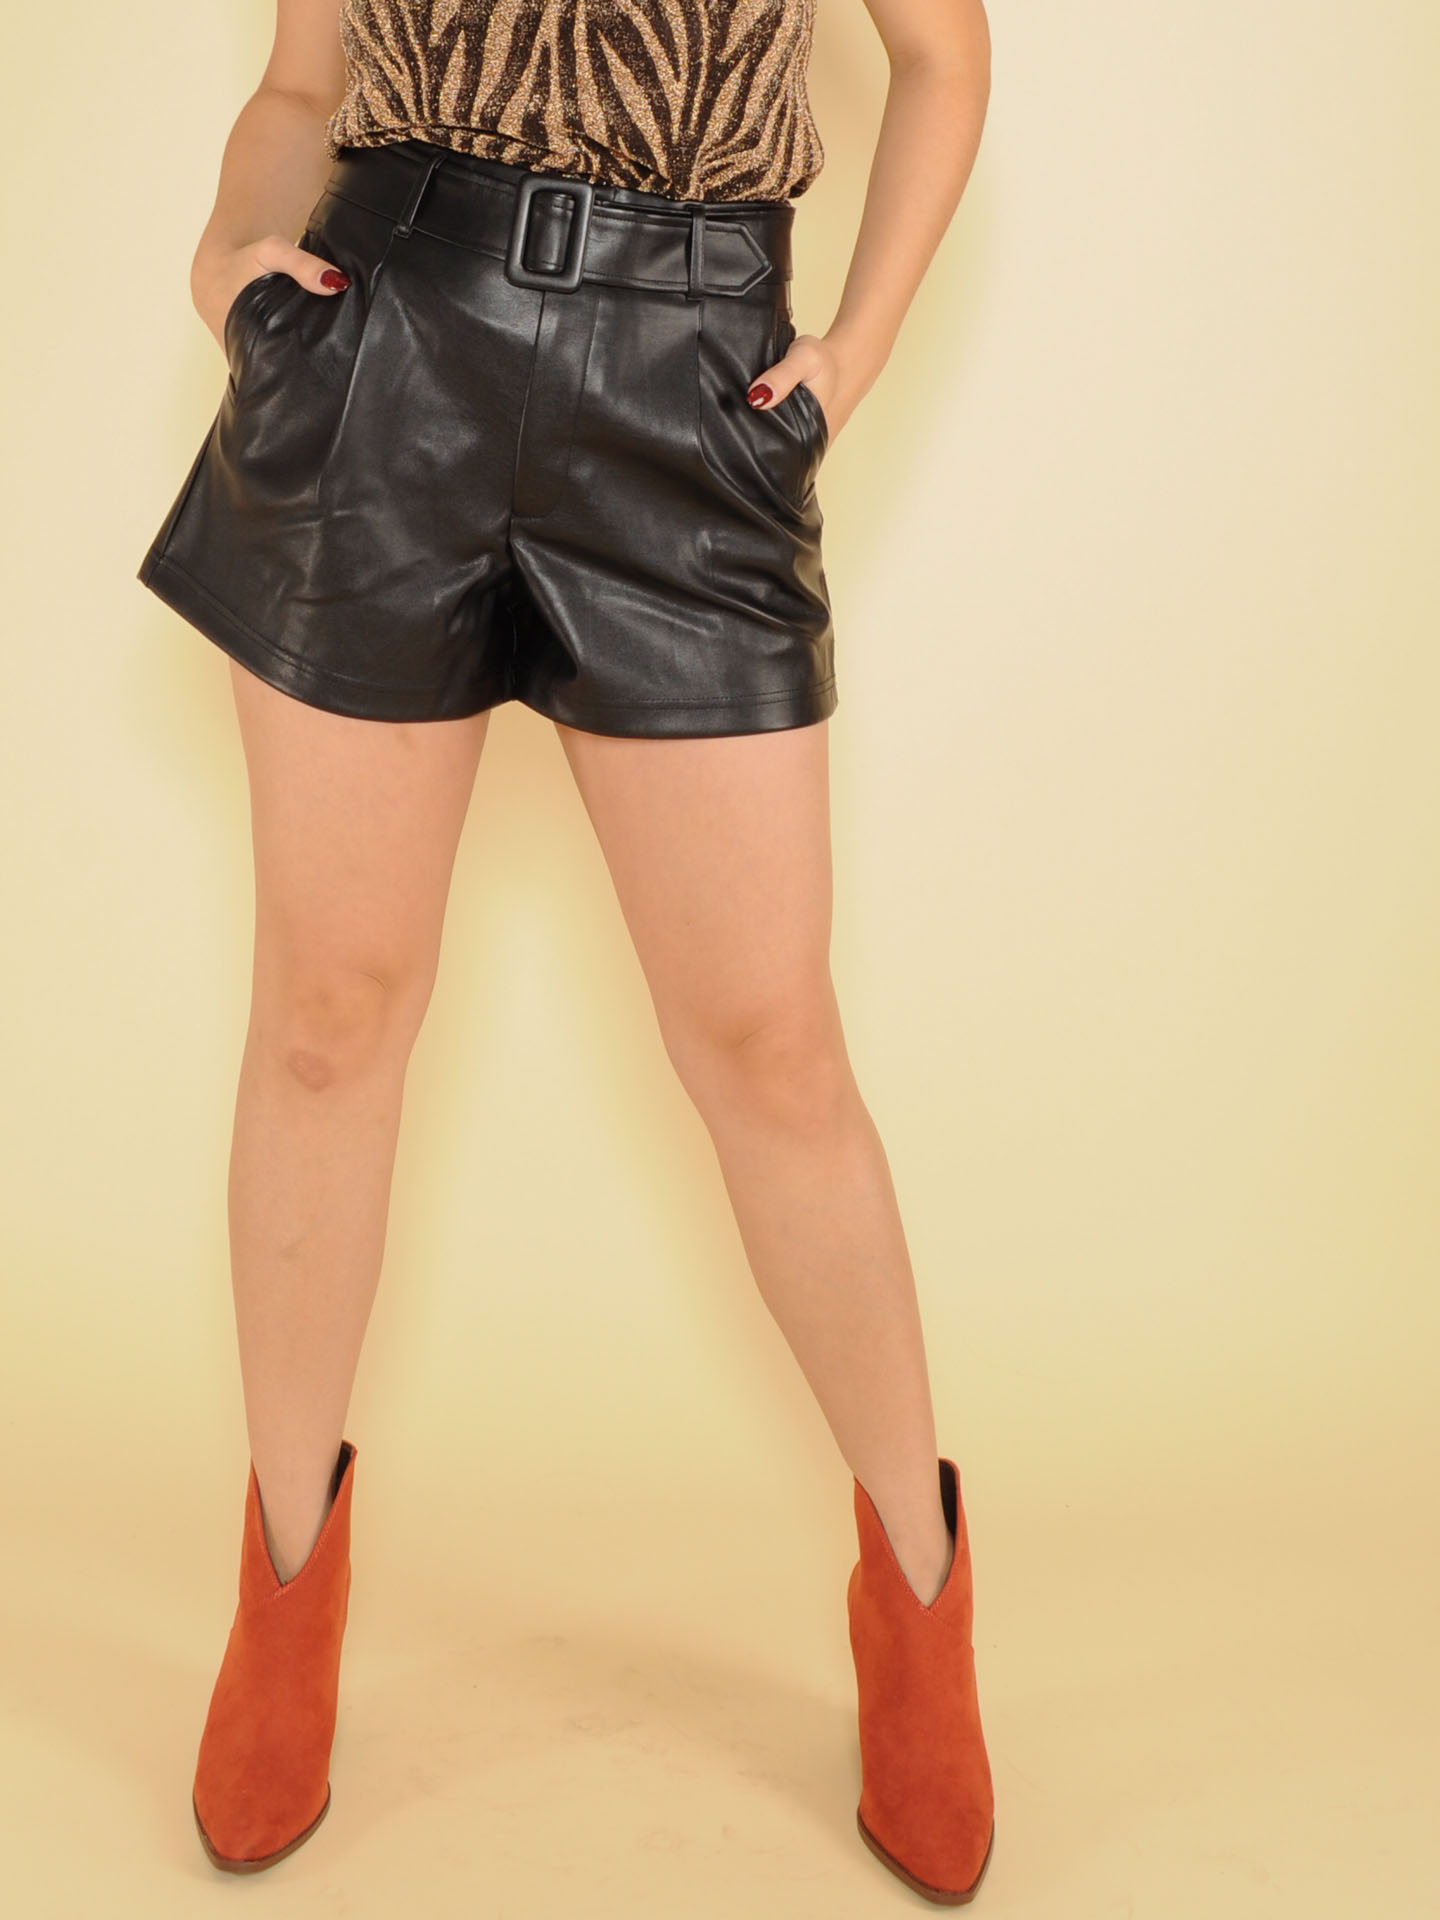 Double Take Shorts Faux Leather Relaxed Front